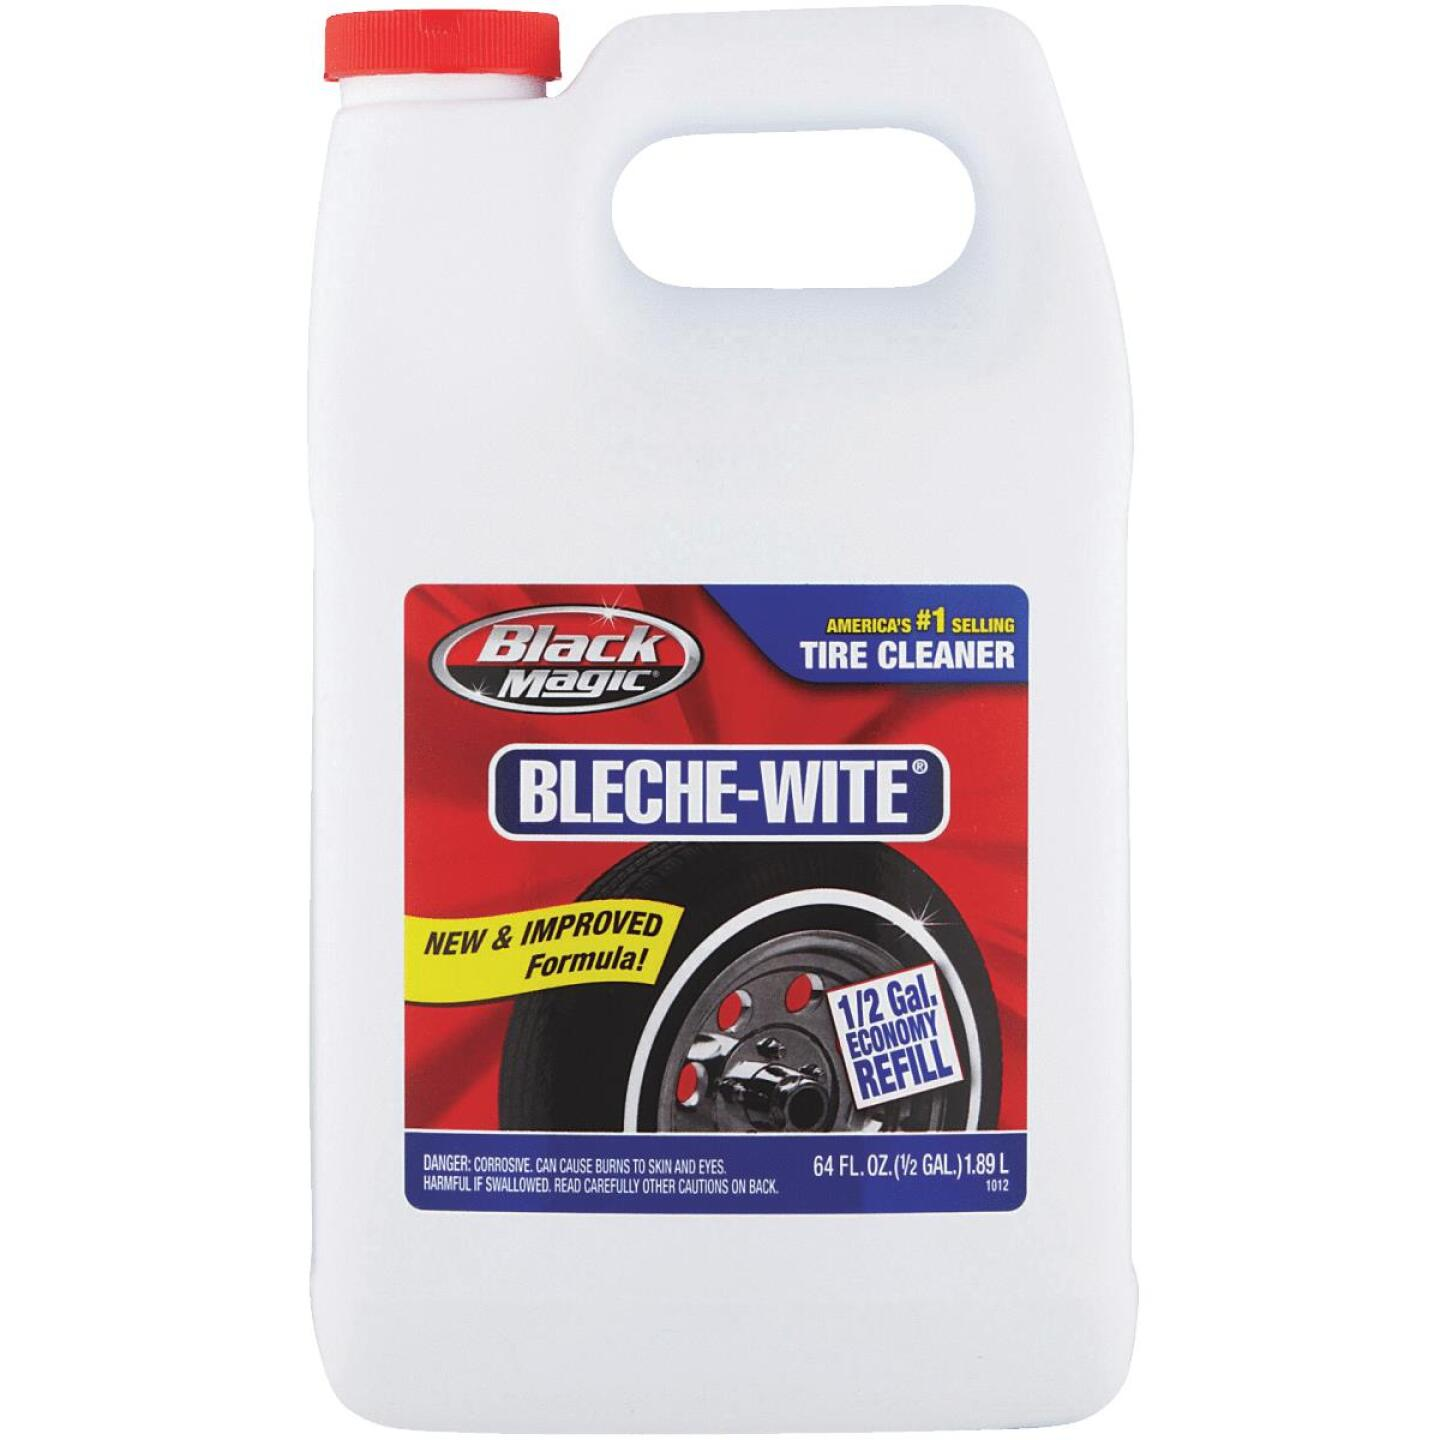 Black Magic Bleche-wite 64 oz Pourable Tire Cleaner Image 1